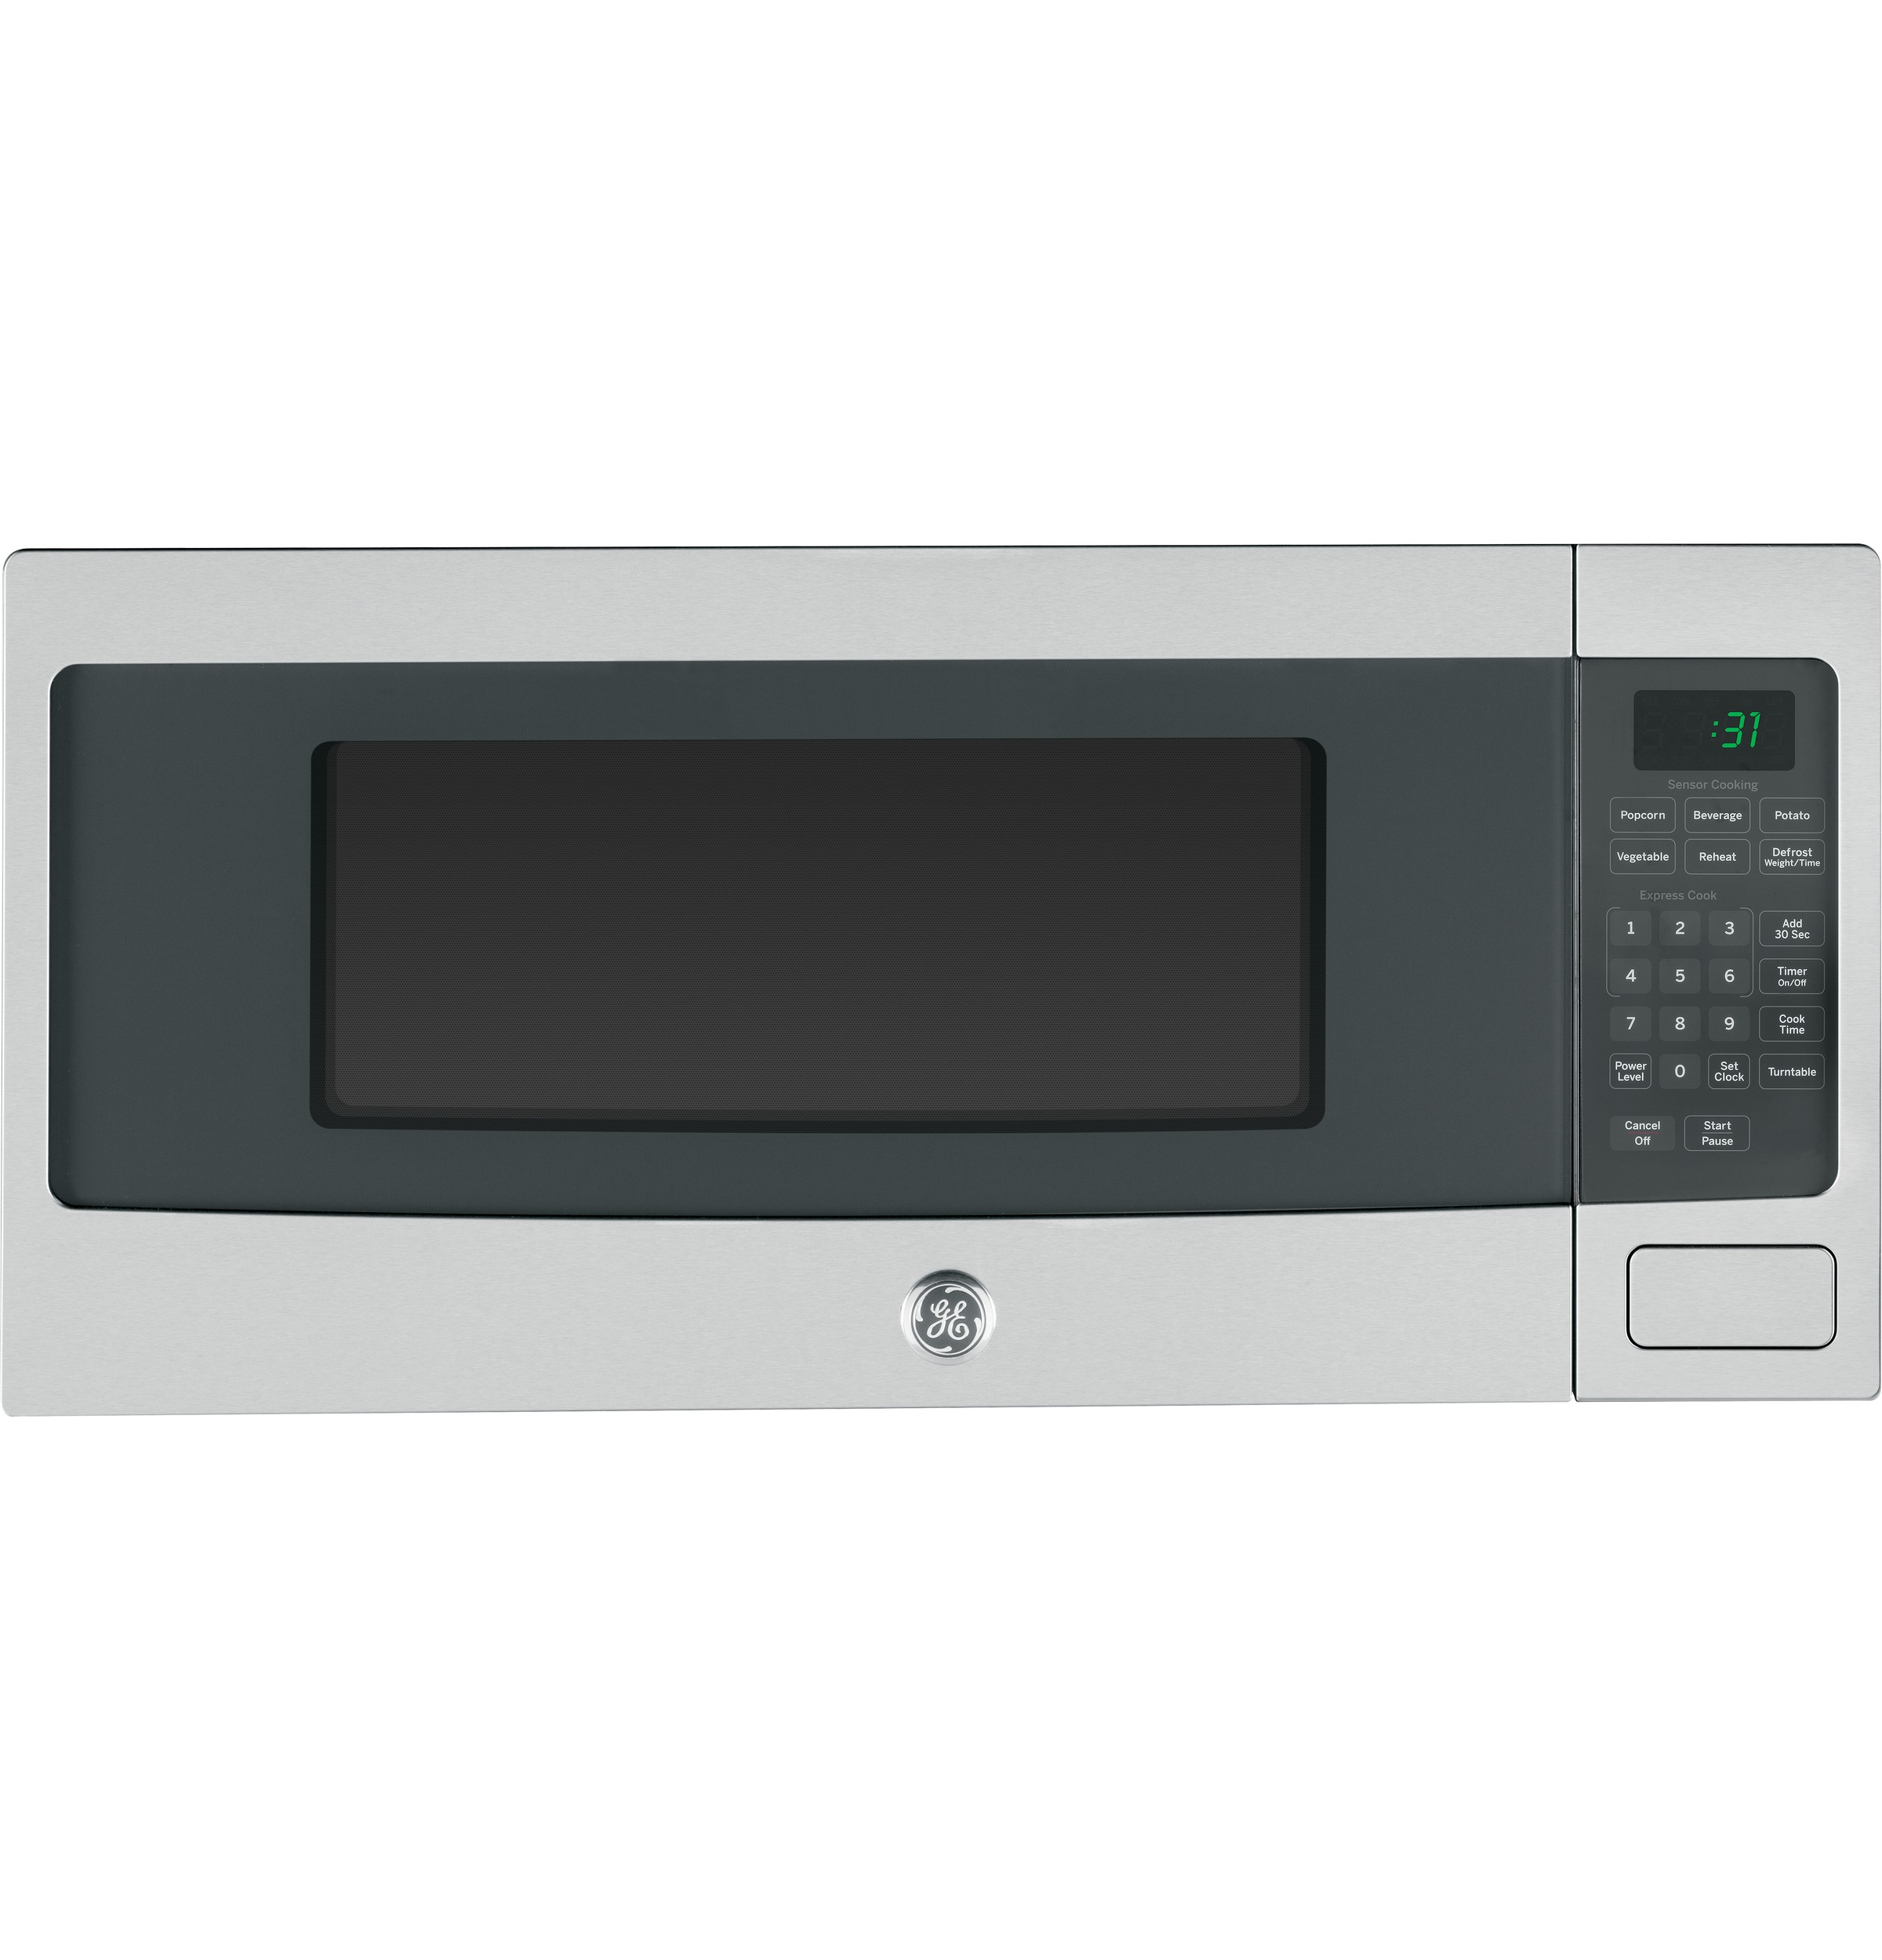 ... Cu. Ft. Countertop Microwave Oven PEM31SFSS GE Appliances